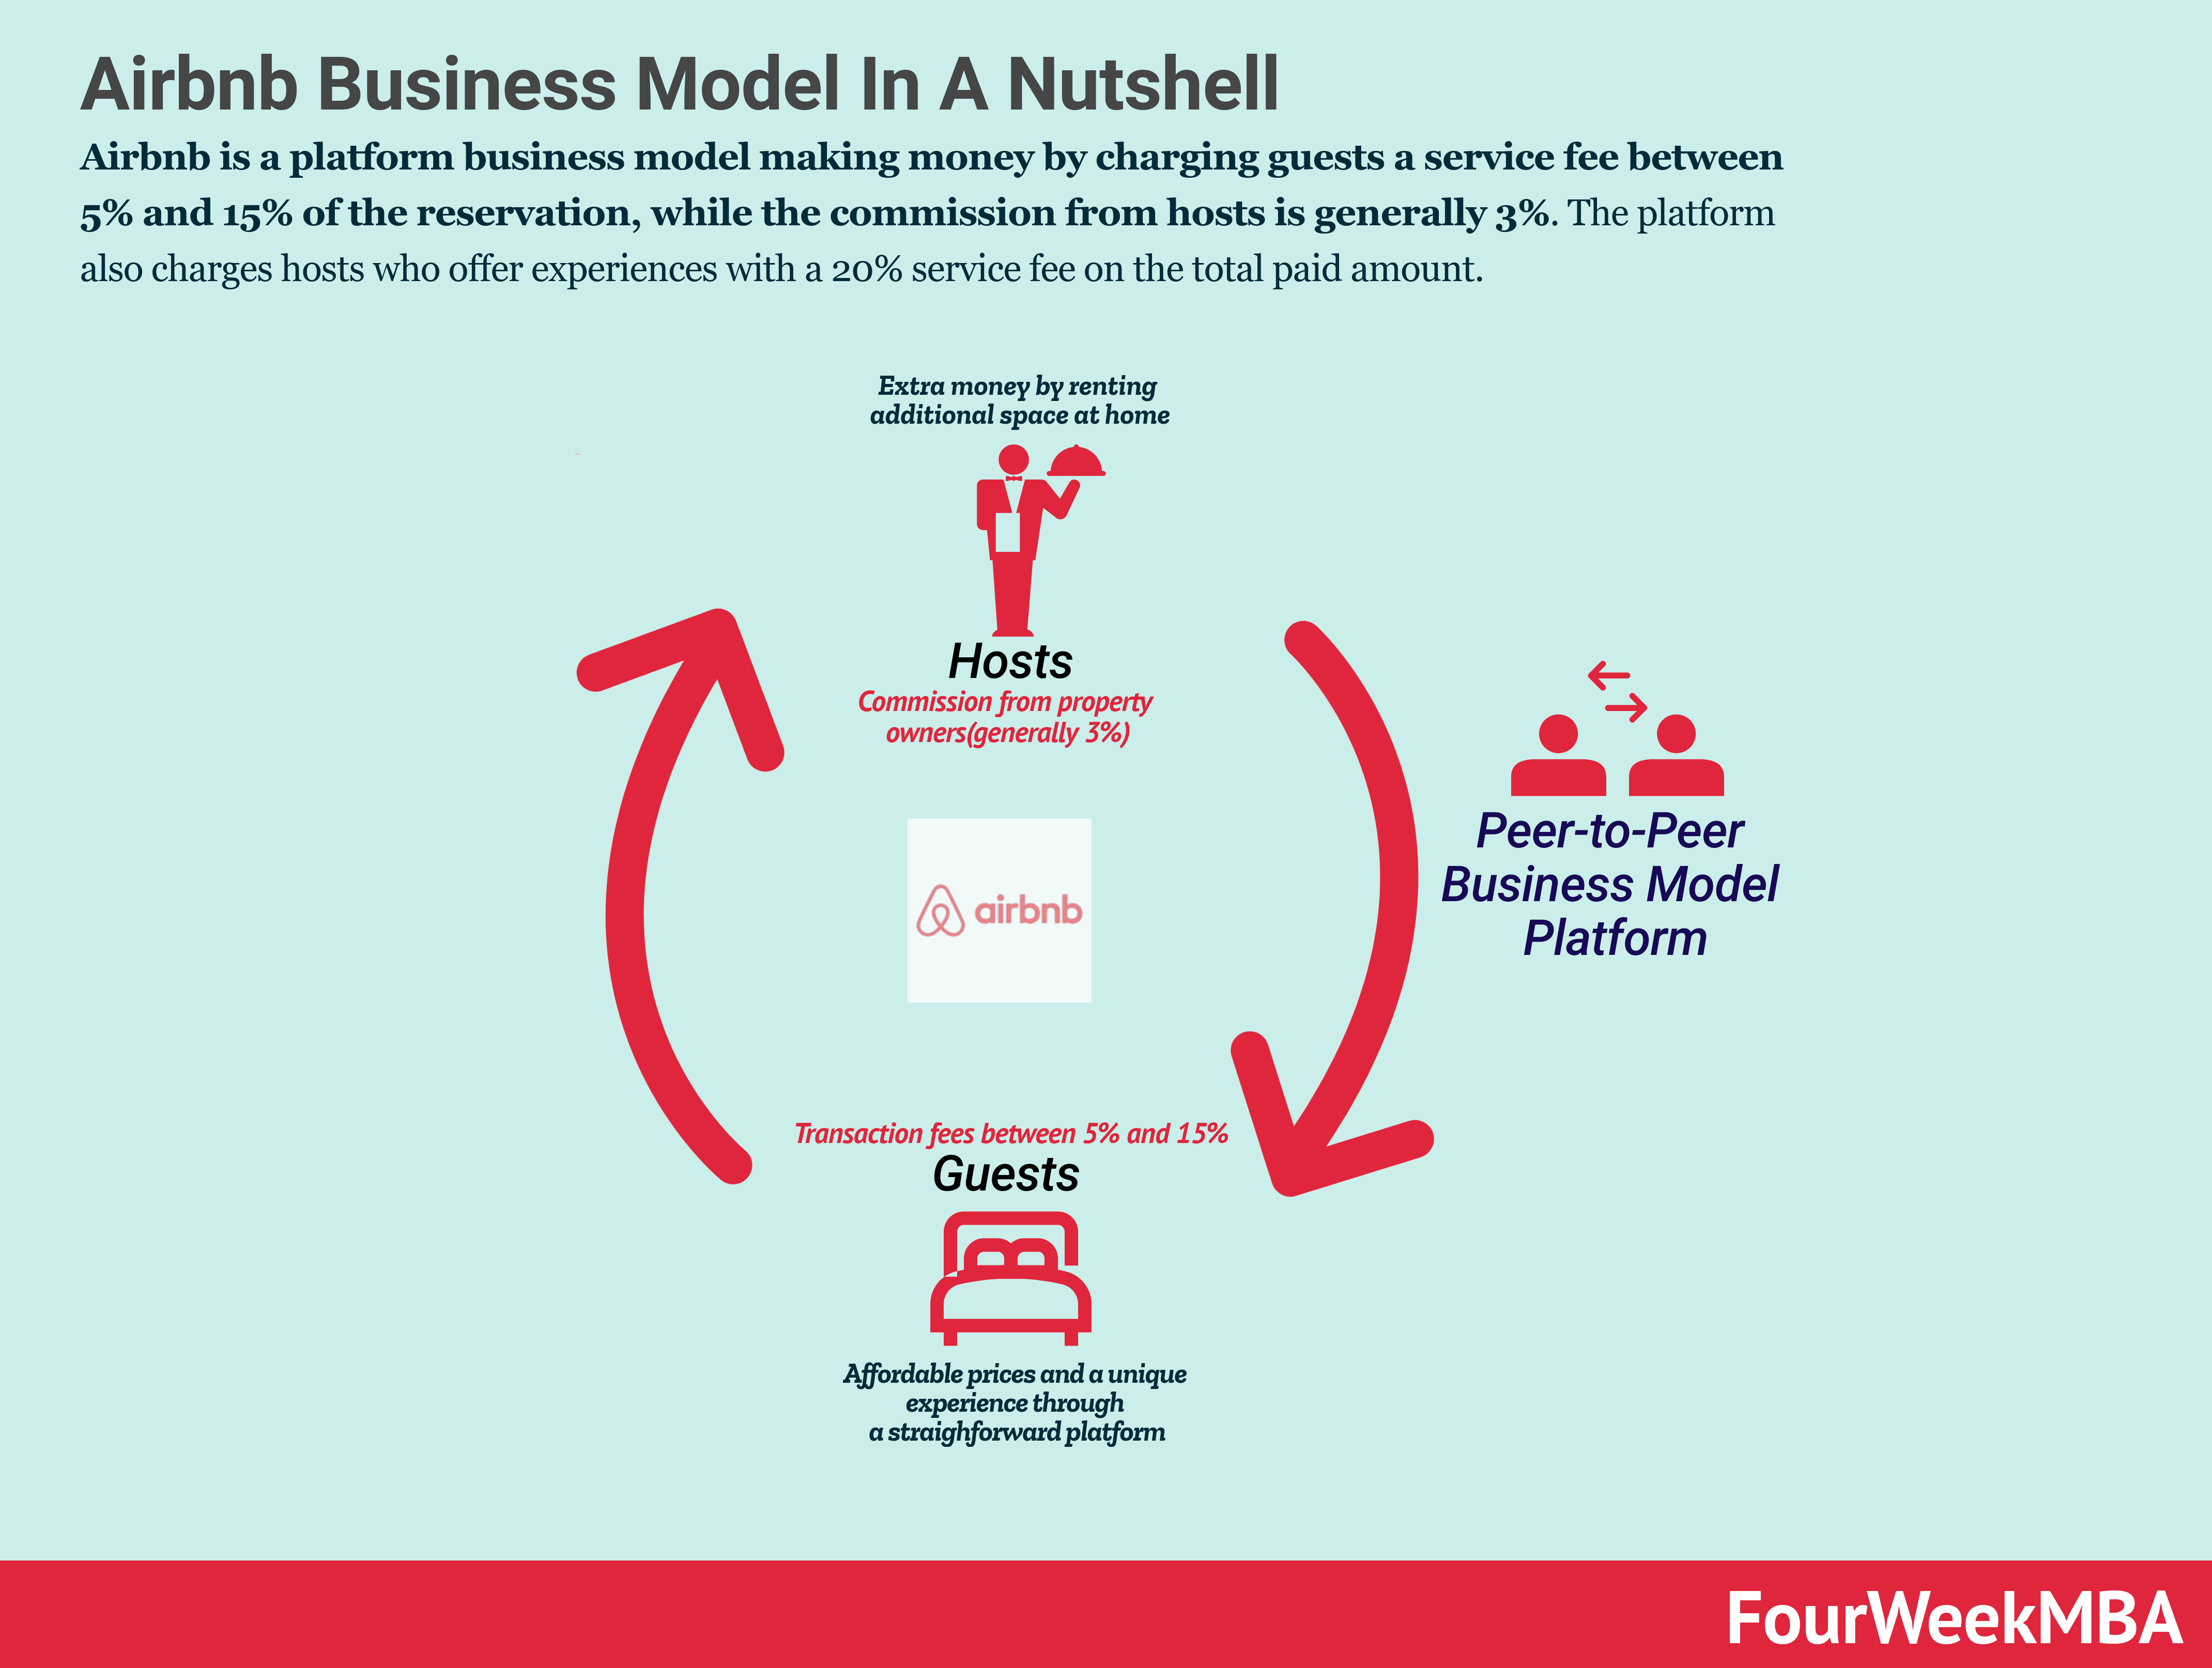 airbnb-business-model